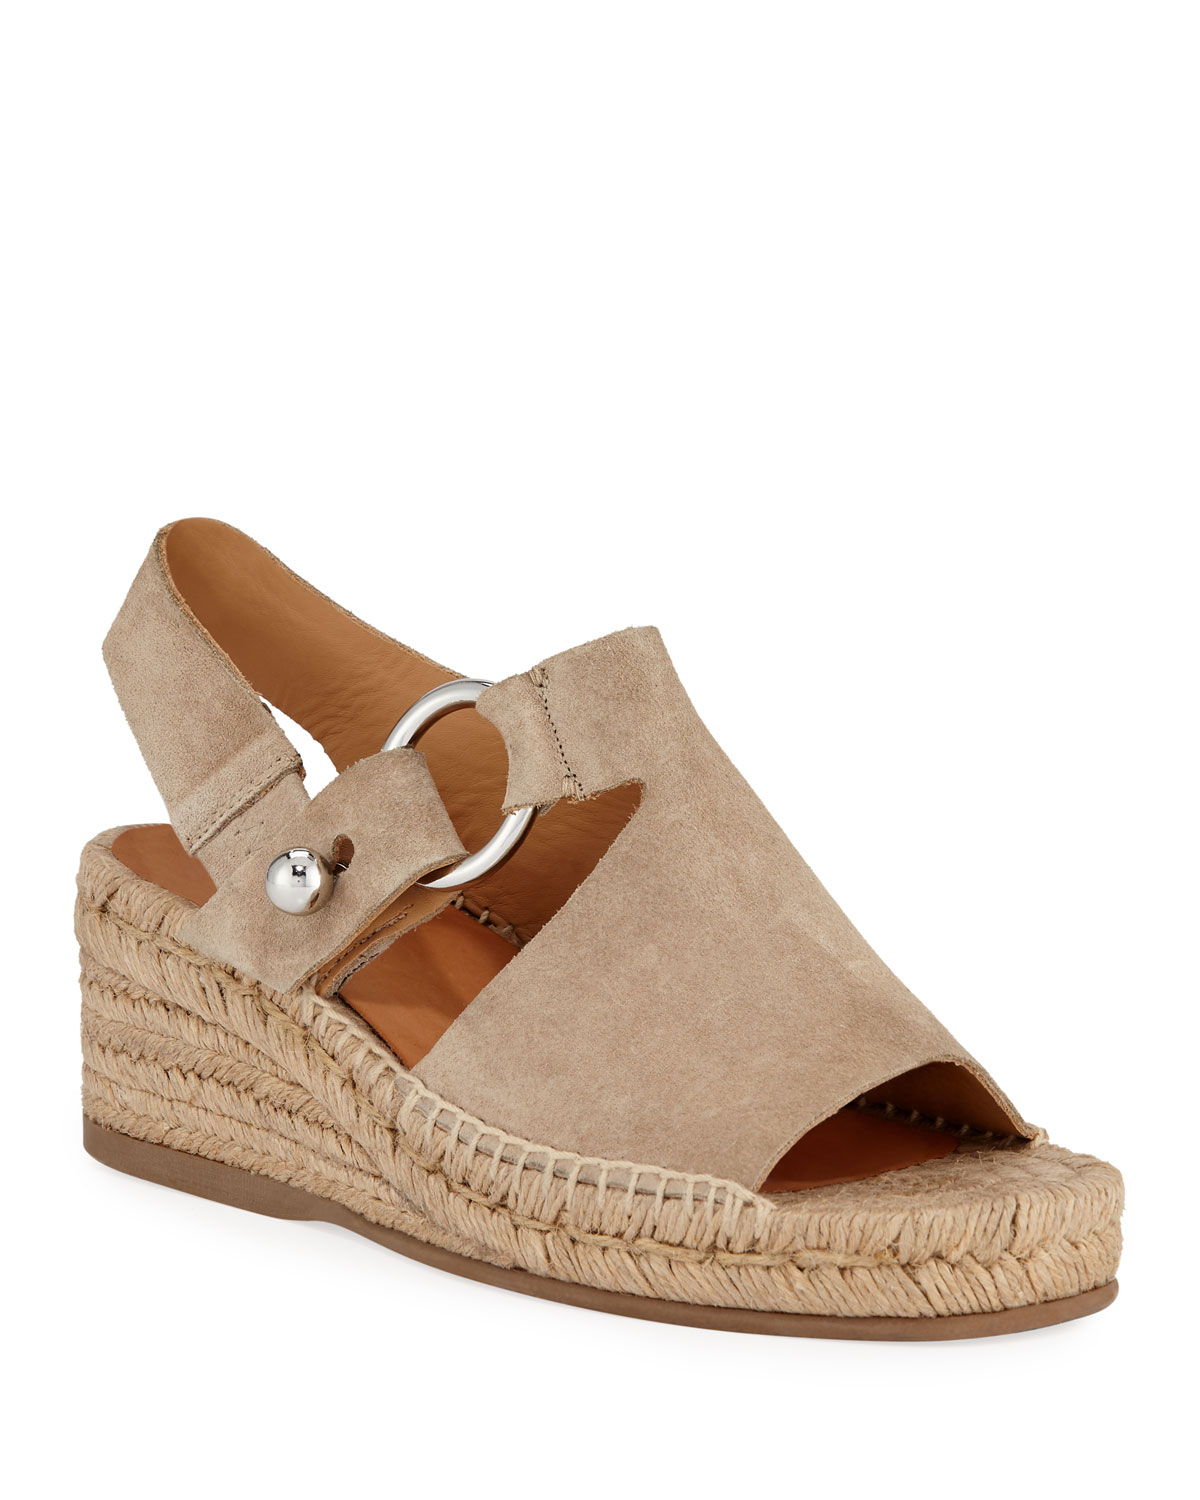 Arc Suede Wedge Espadrilles